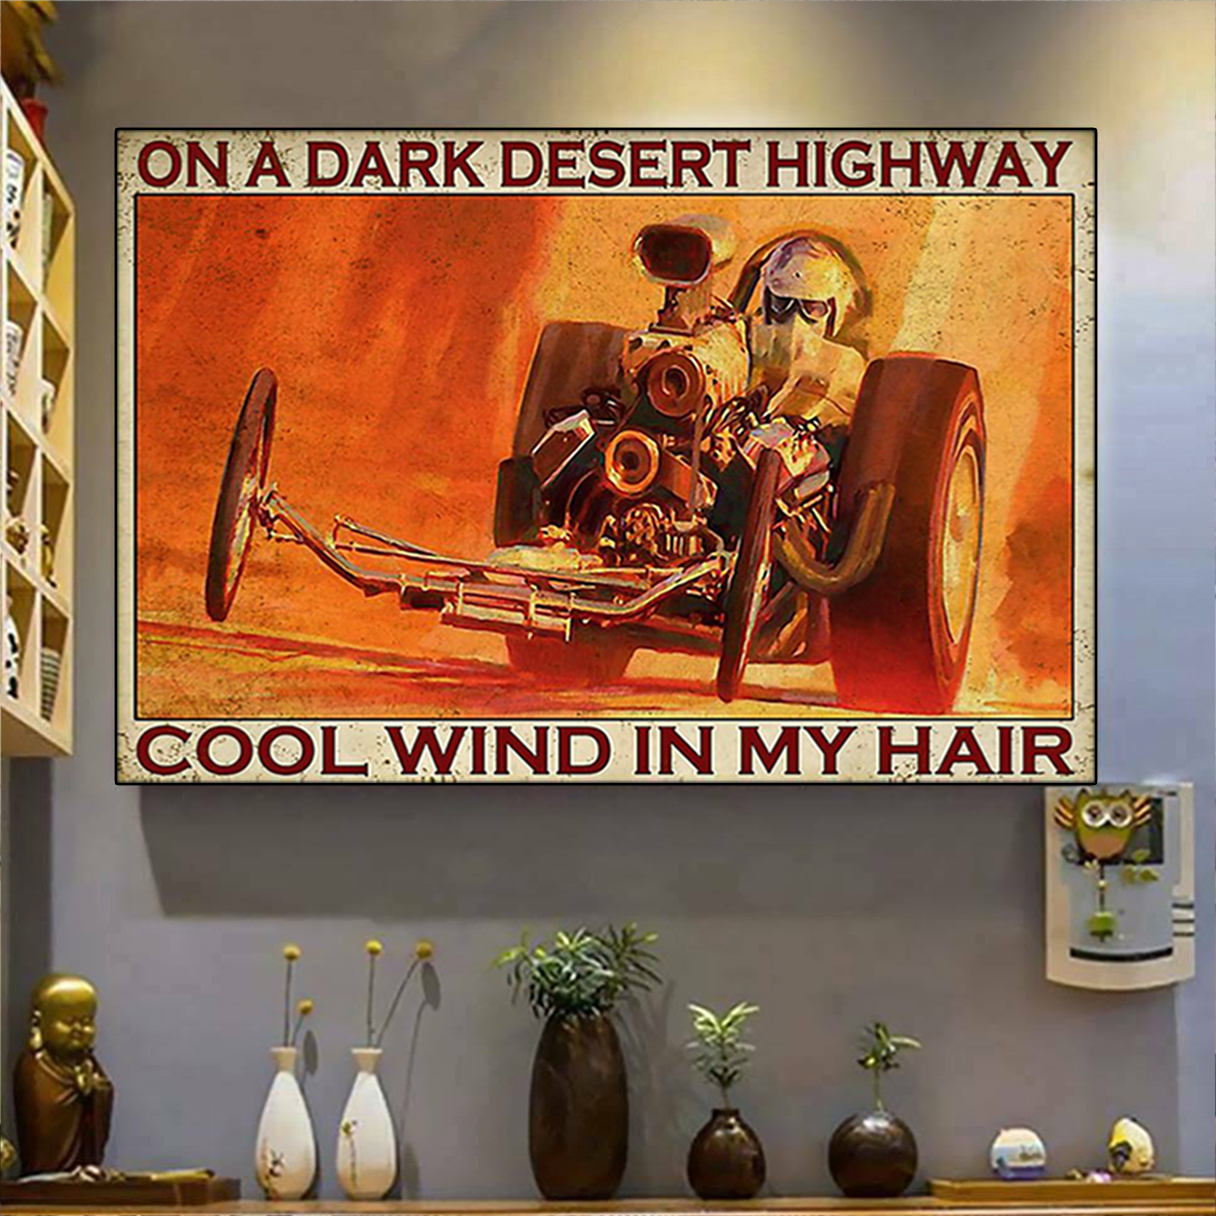 Drag racing on a dark desert highway cool wind in my hair poster A1